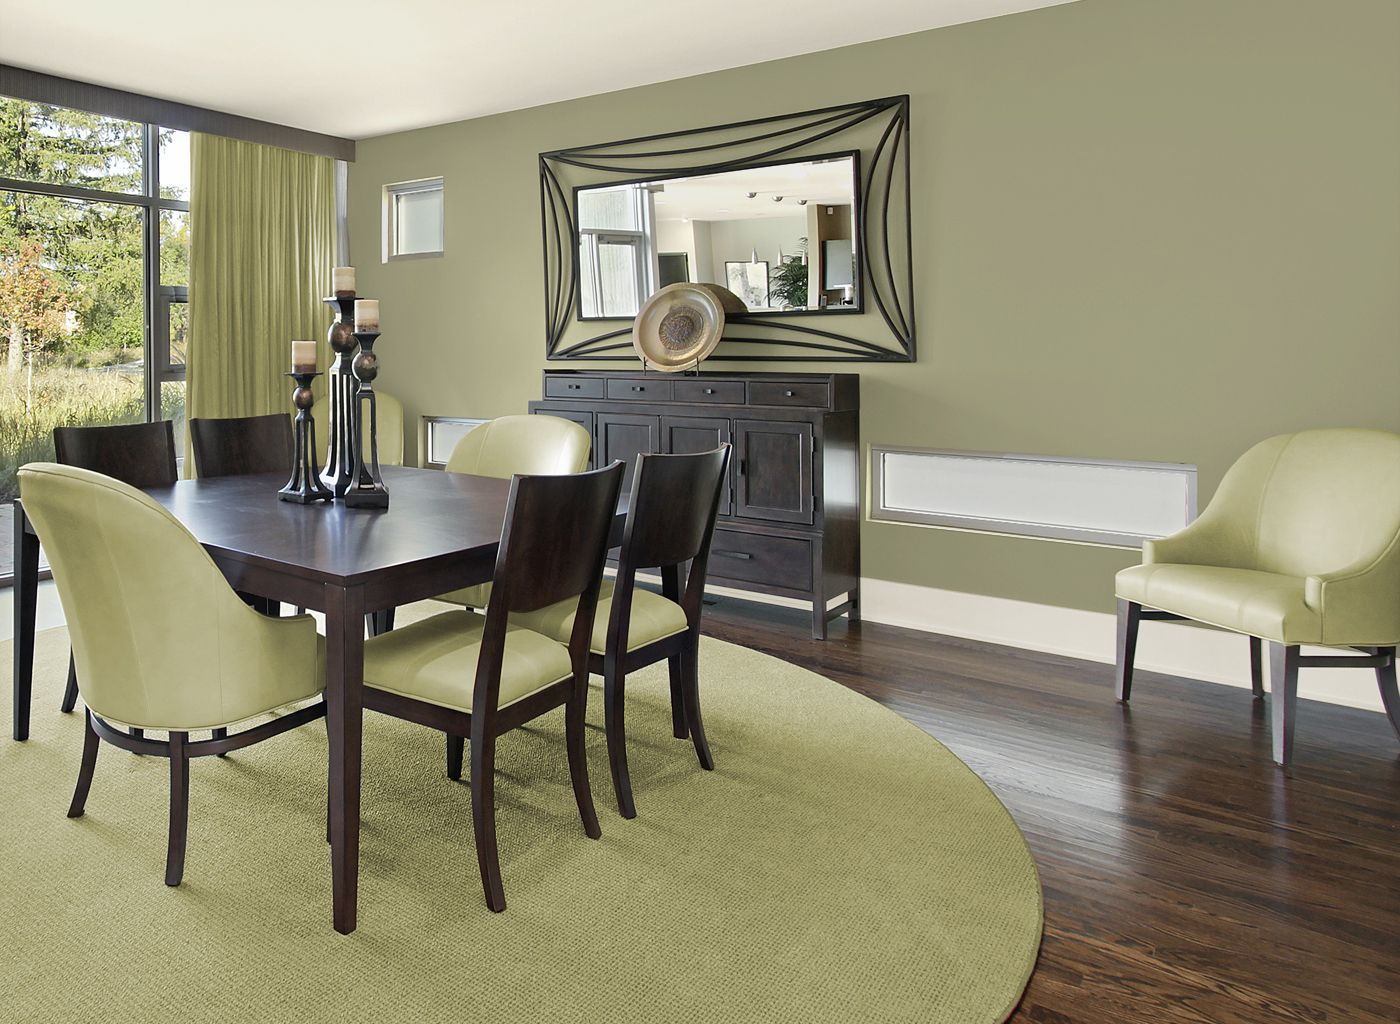 Dining Room Paint Ideas Green In Artichoke Leaf